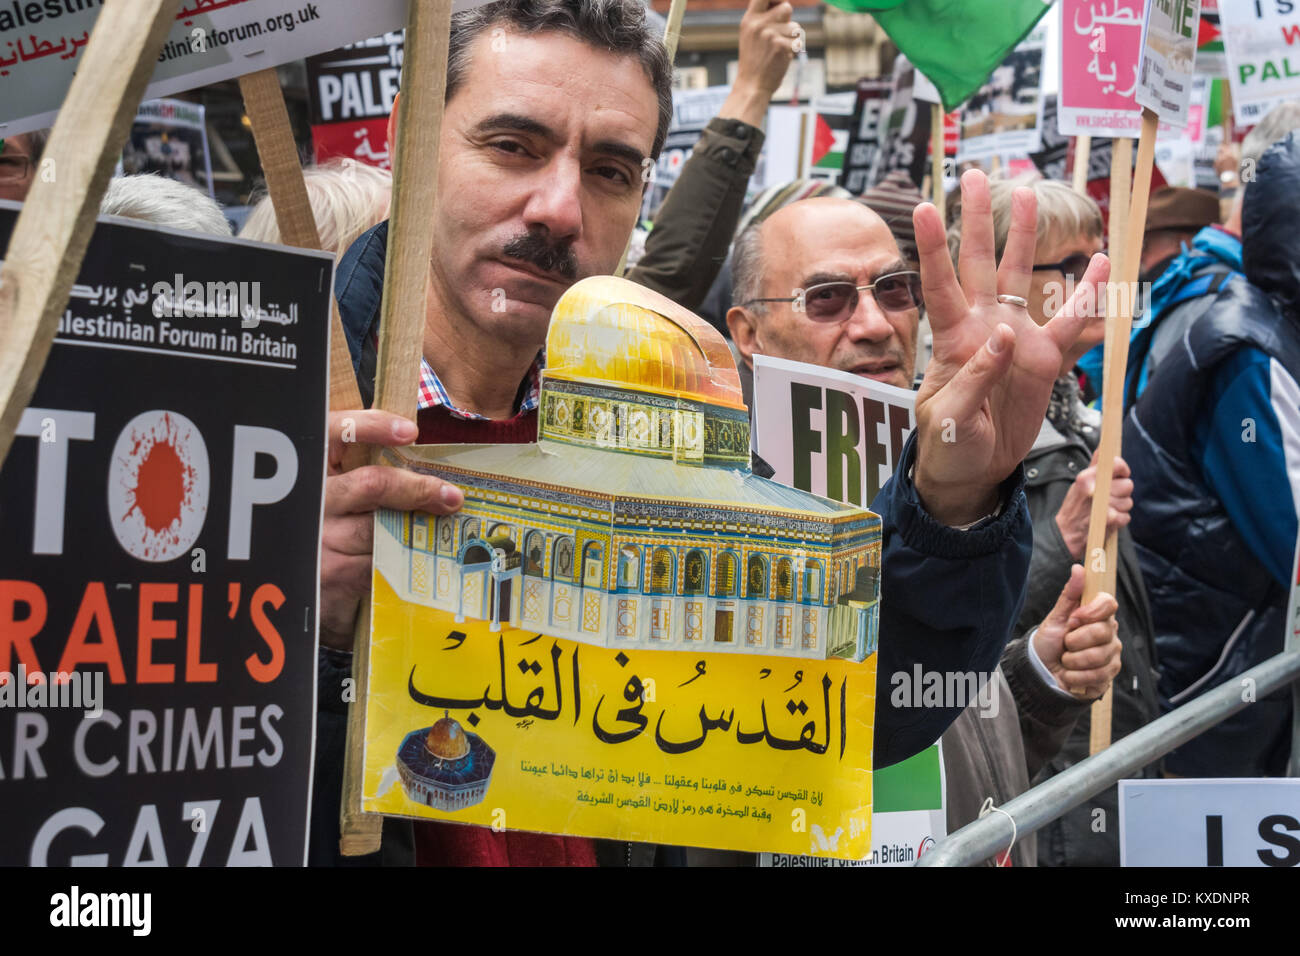 A man holds an image of the Al Aqsa mosque in Jerusalem at the protest at Israeli embassy in London calling for - Stock Image